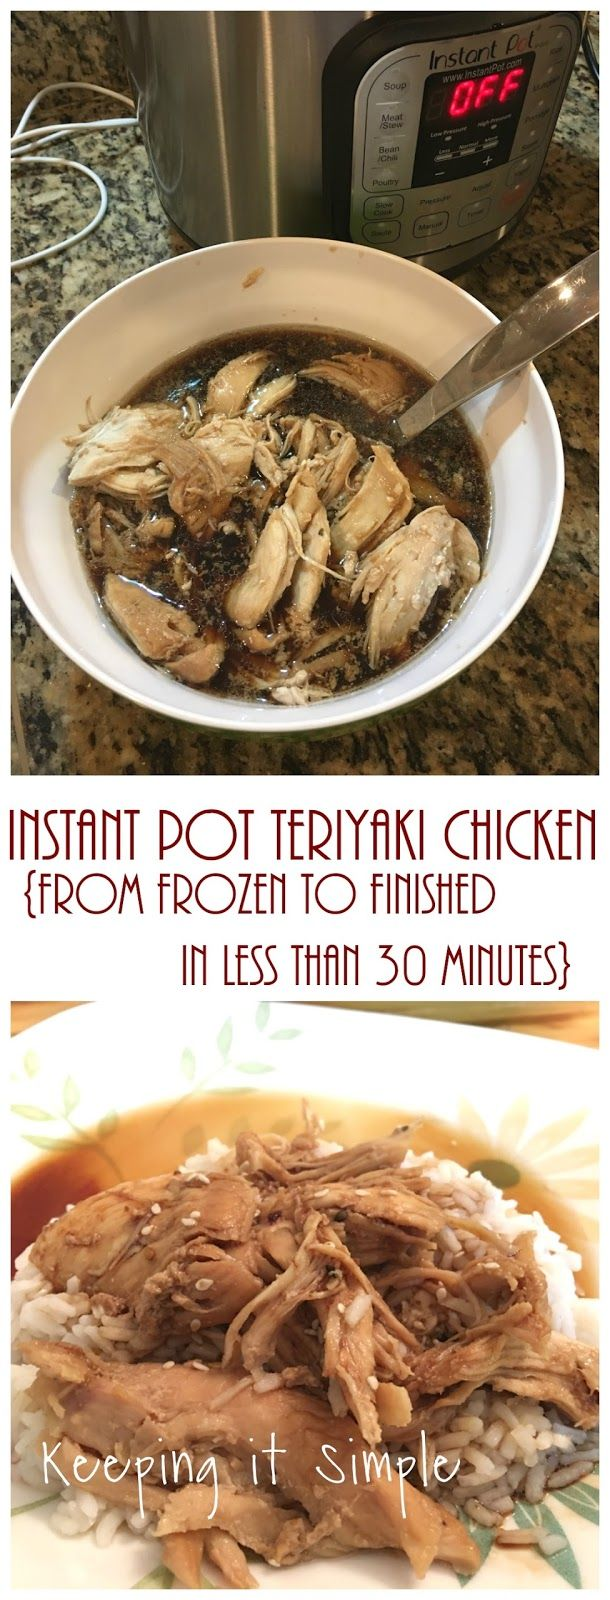 Instant Pot Teriyaki Chicken.  You can make this from frozen chicken in less than 30 minutes, start to finish!